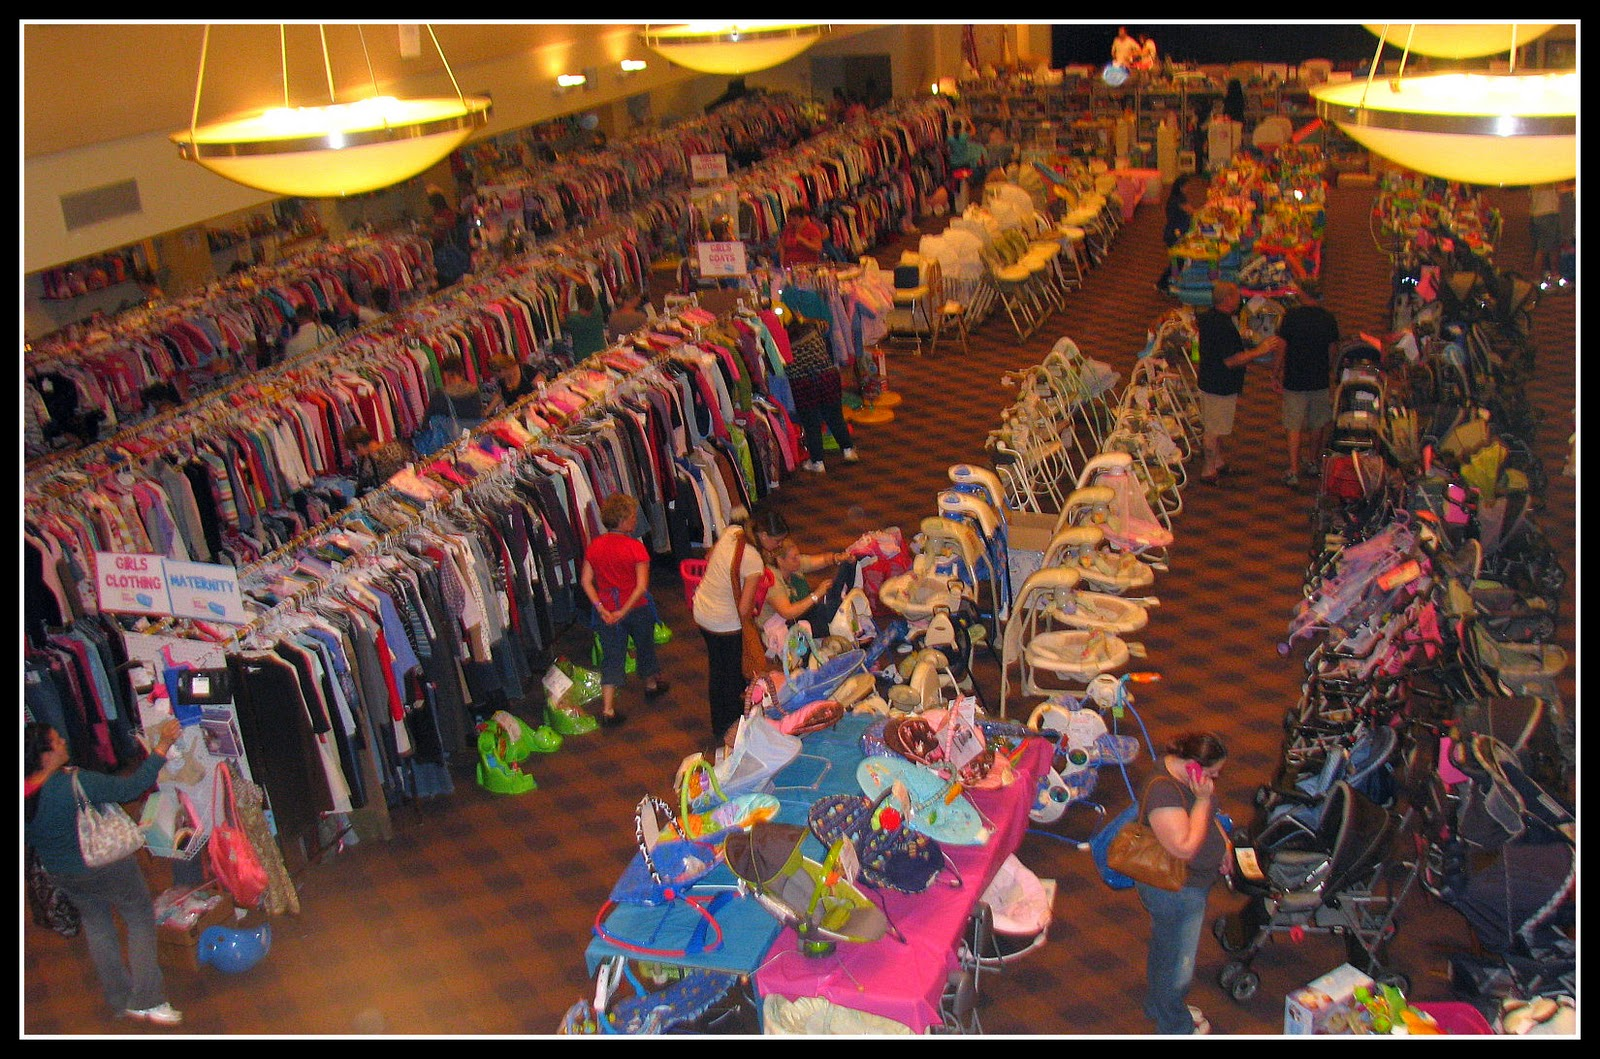 Penny Wise Shopping The Best Dressed For Less Consignment Sale The Family Penny Pincher